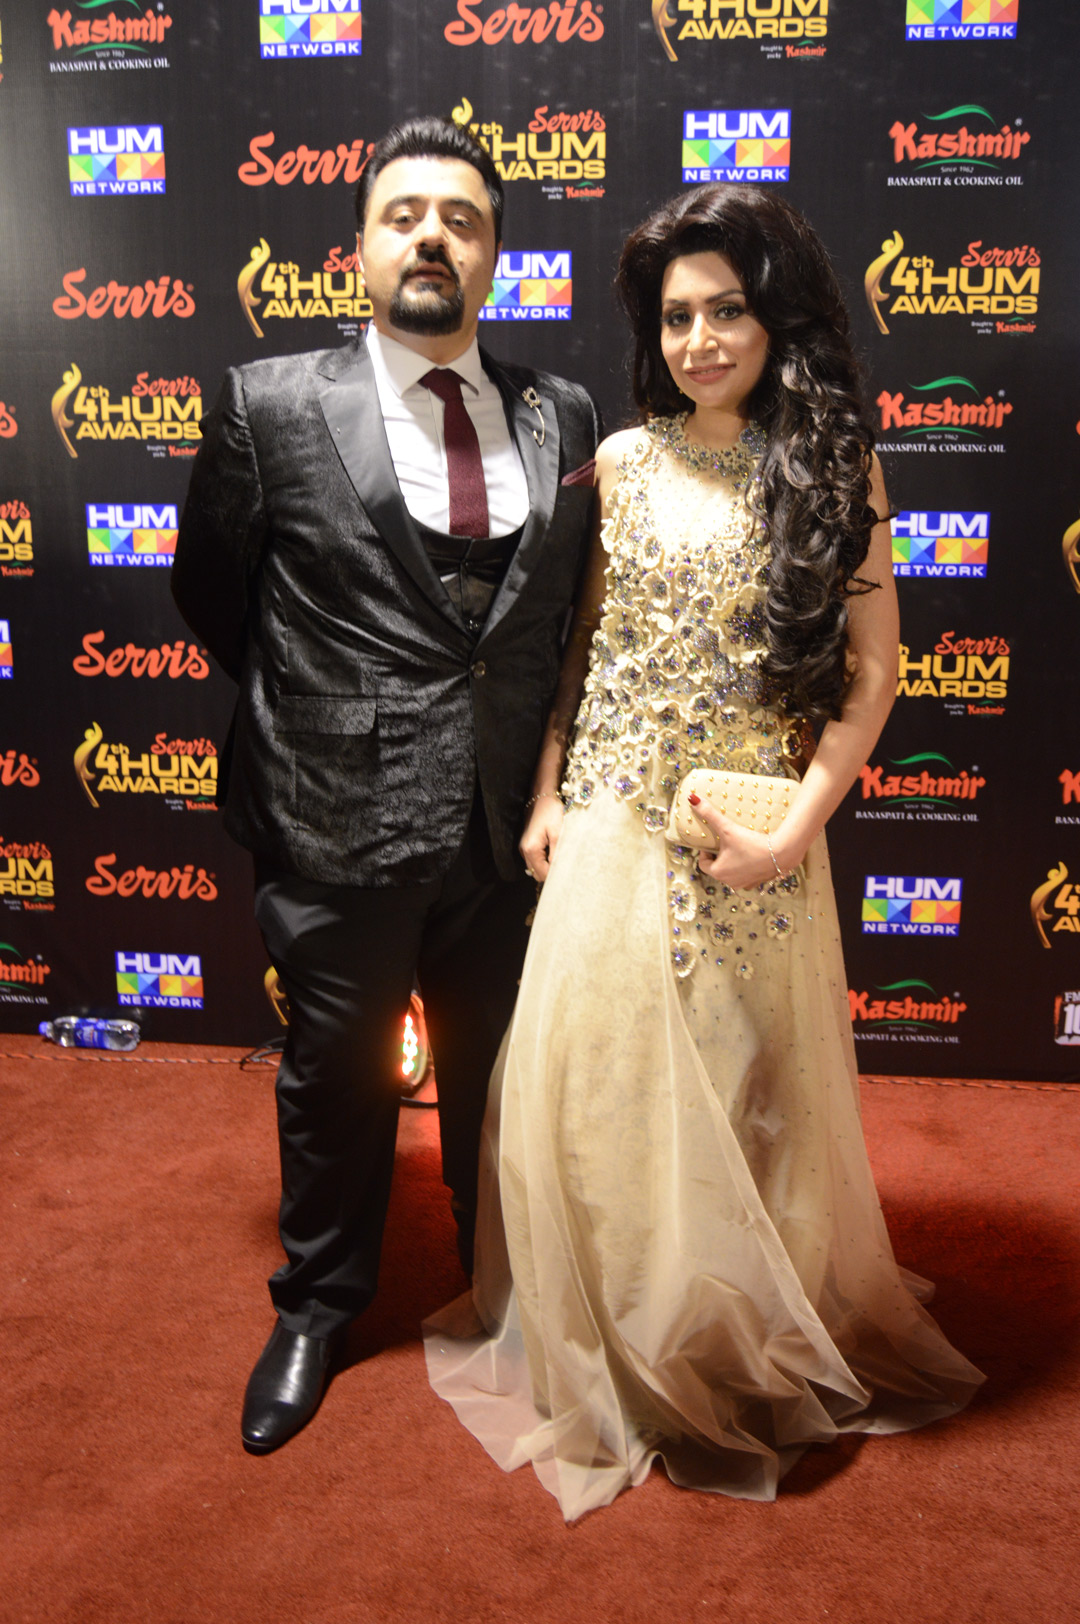 Ahmed Ali Butt with his wife Fatima HUM Awards Red Carpet